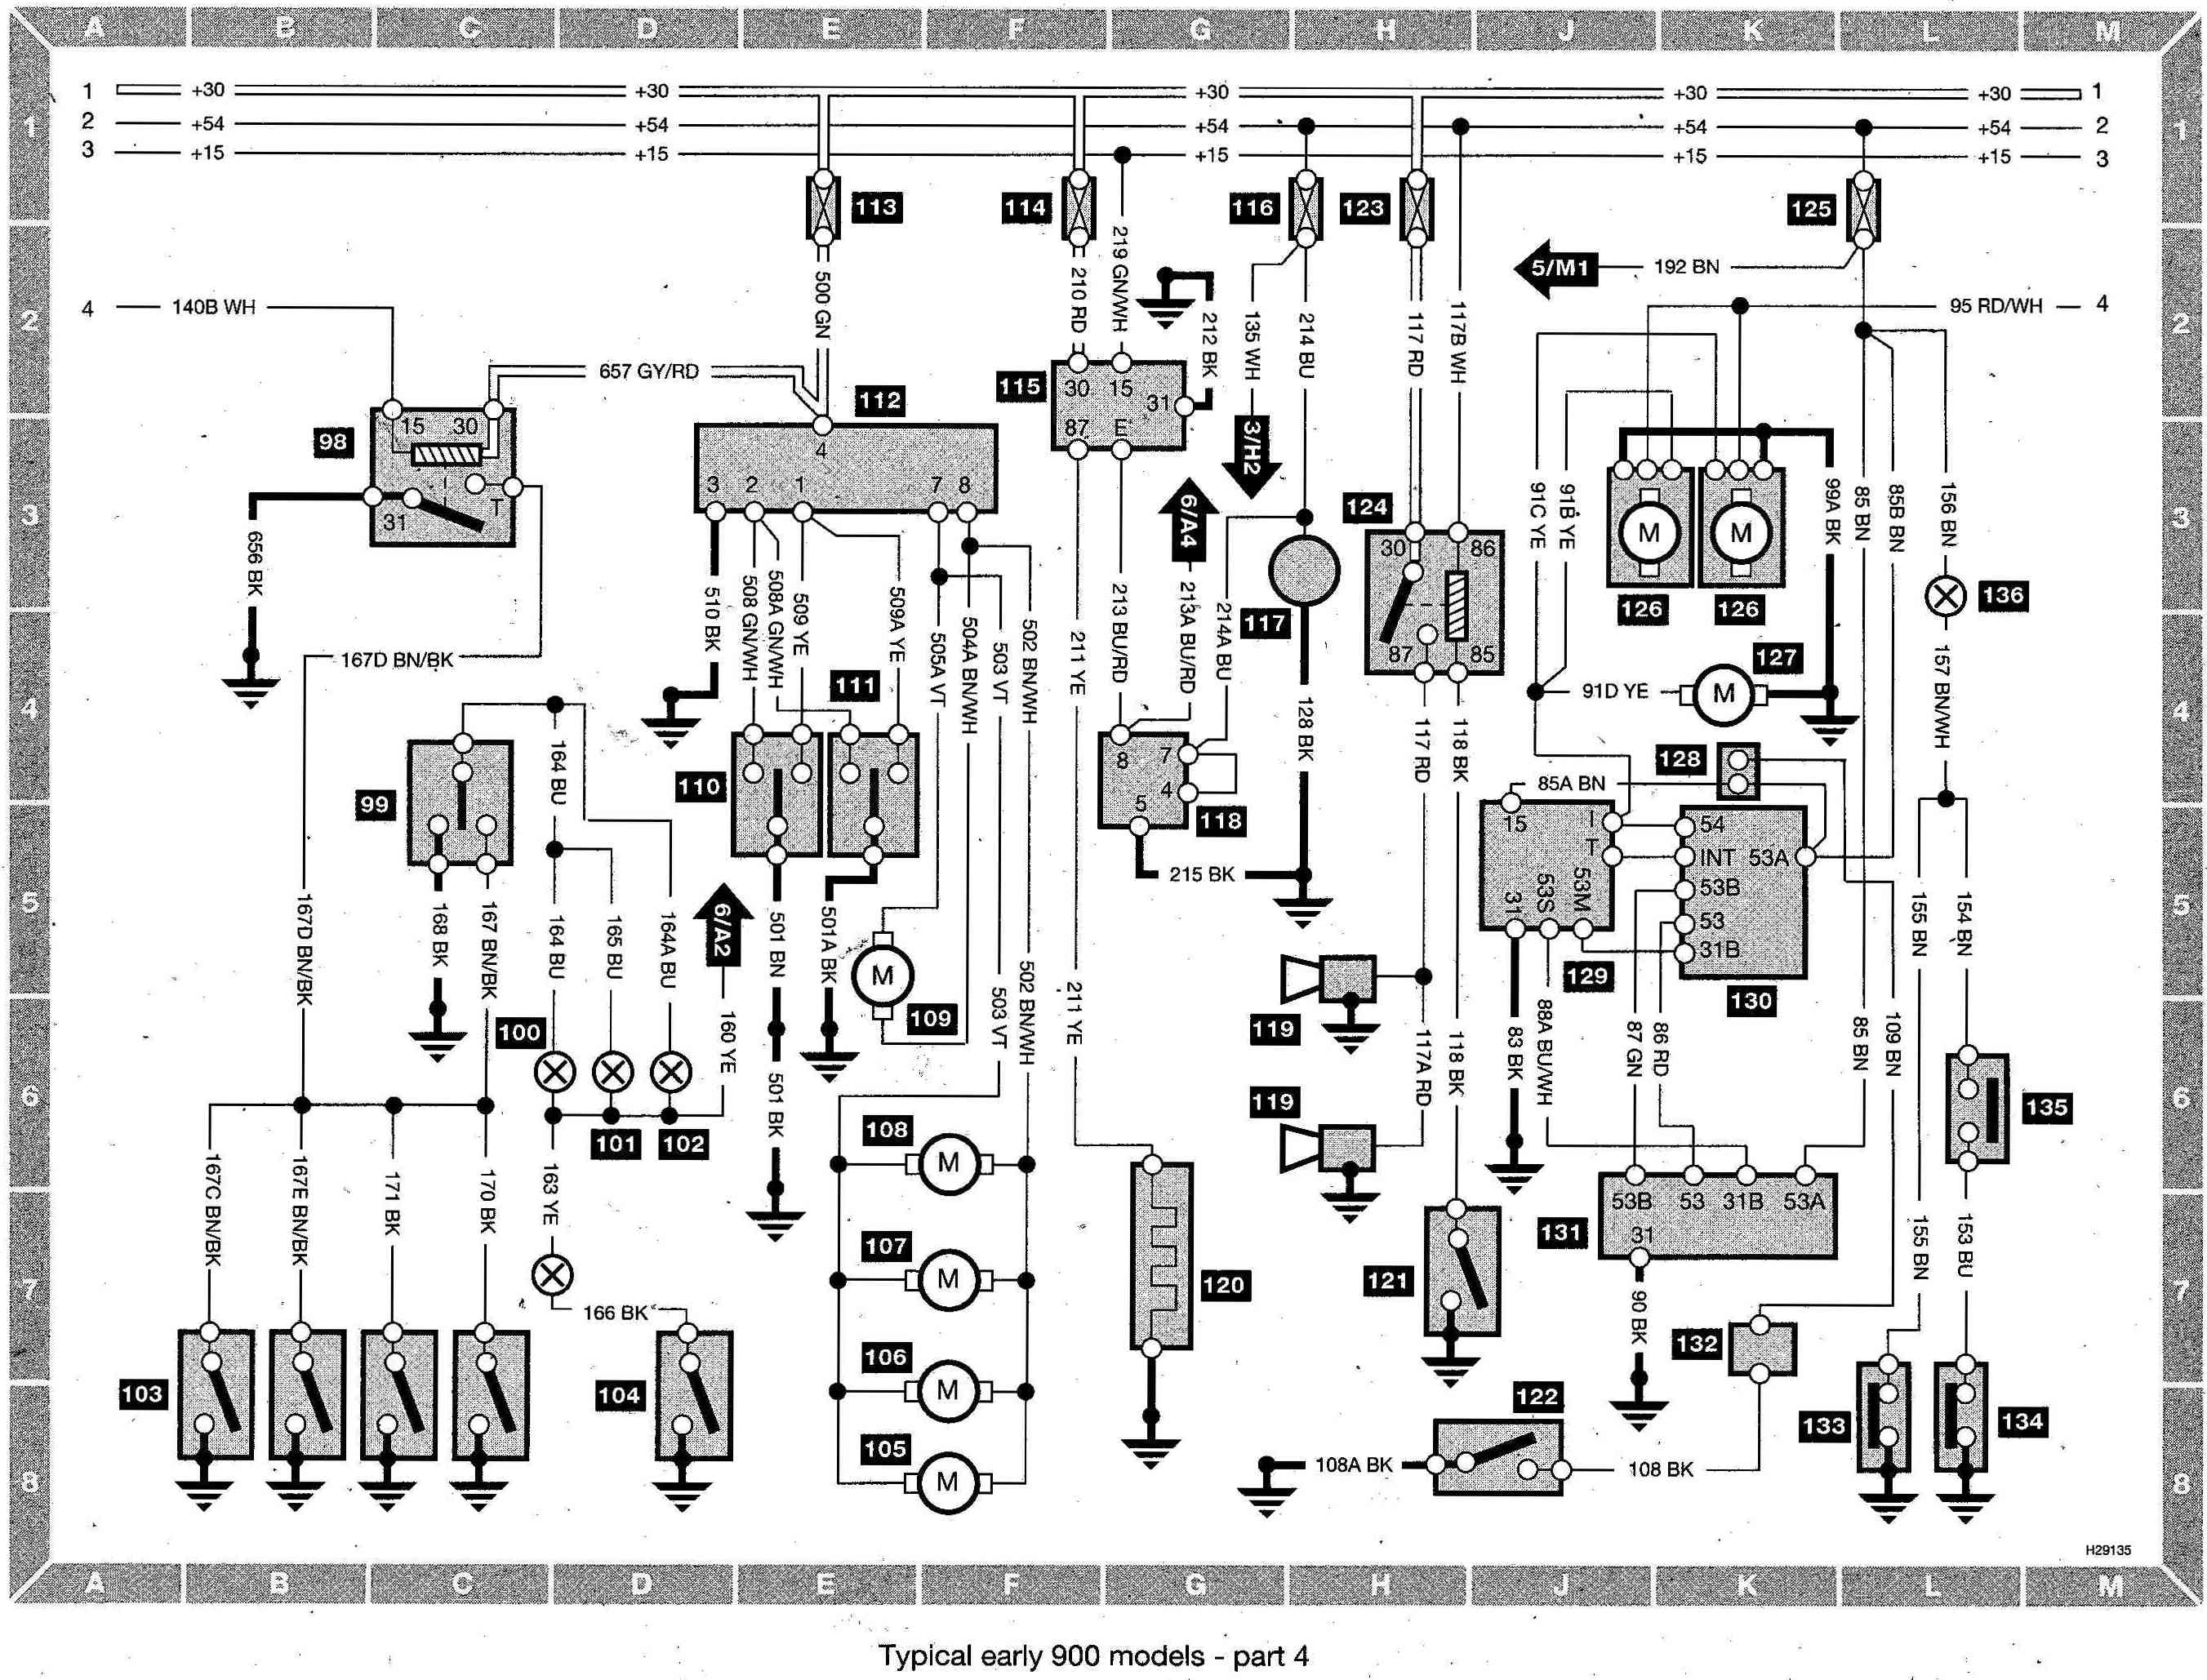 Saab Ignition Wiring Diagram on 2006 mazda tribute radio